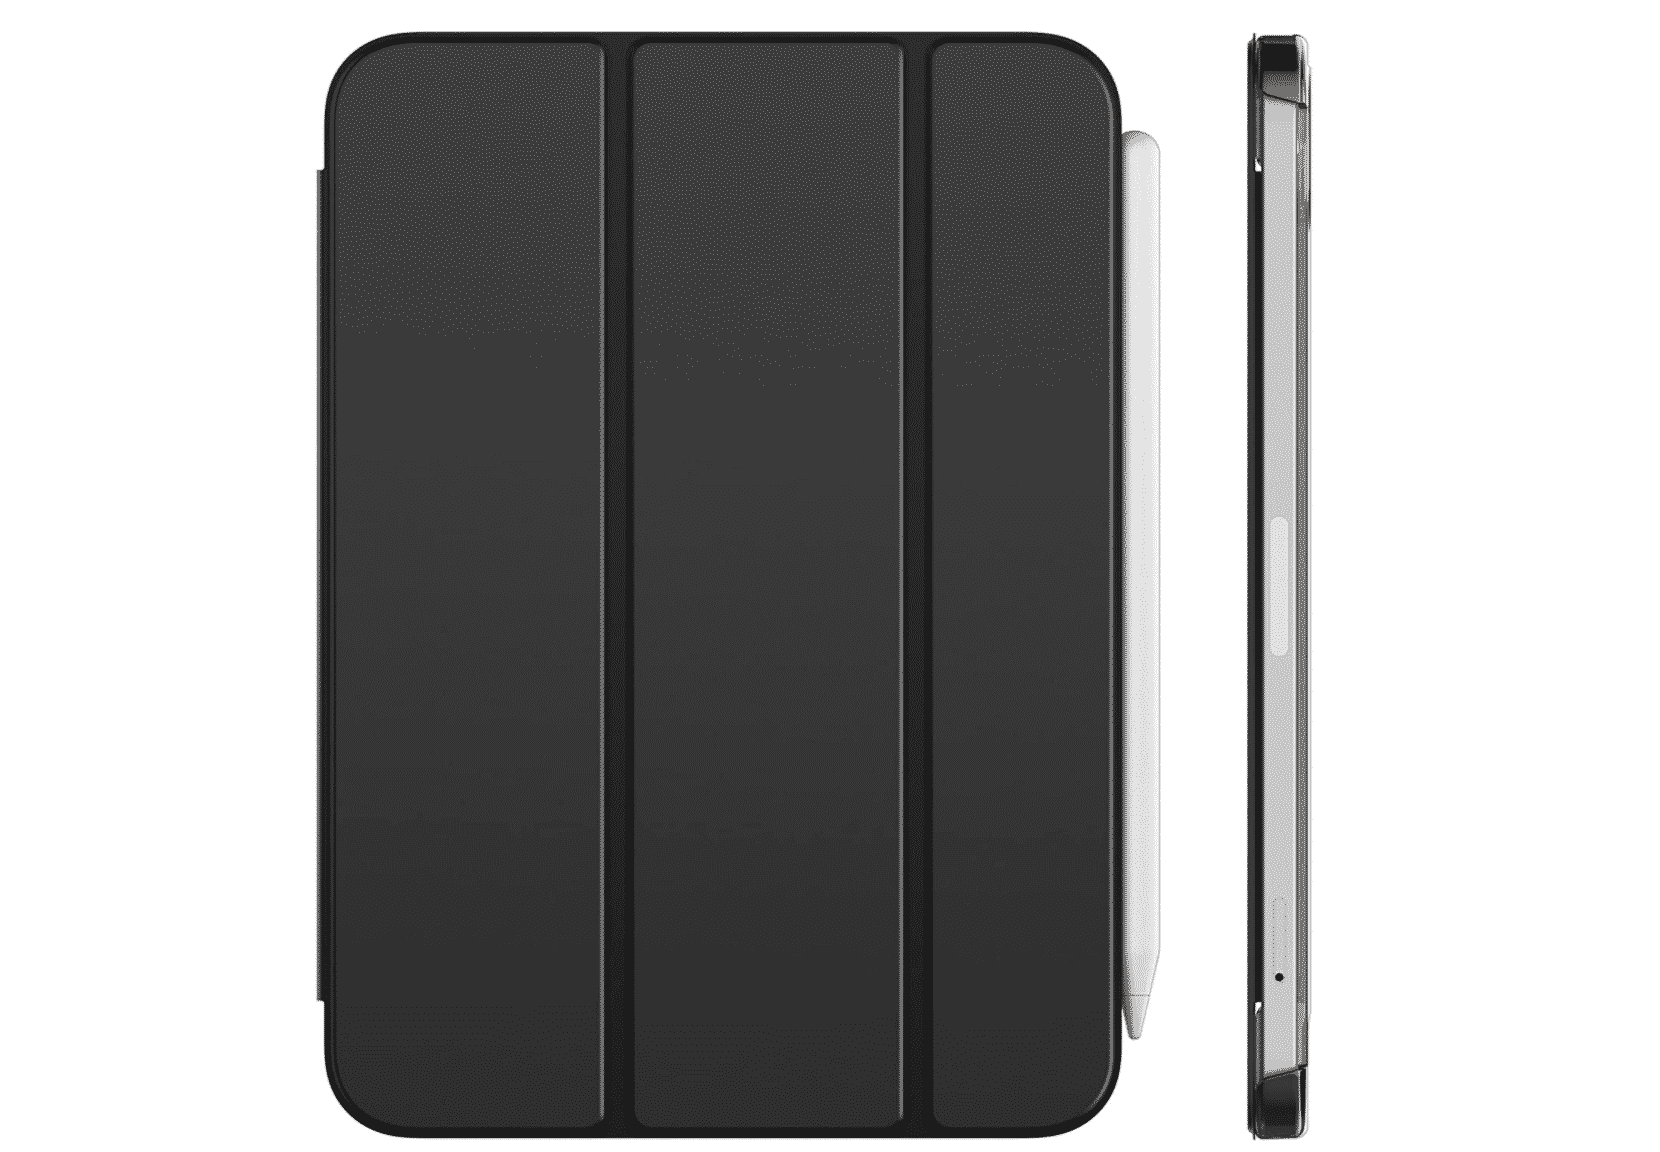 iPad Mini 6 with this Smart Cover